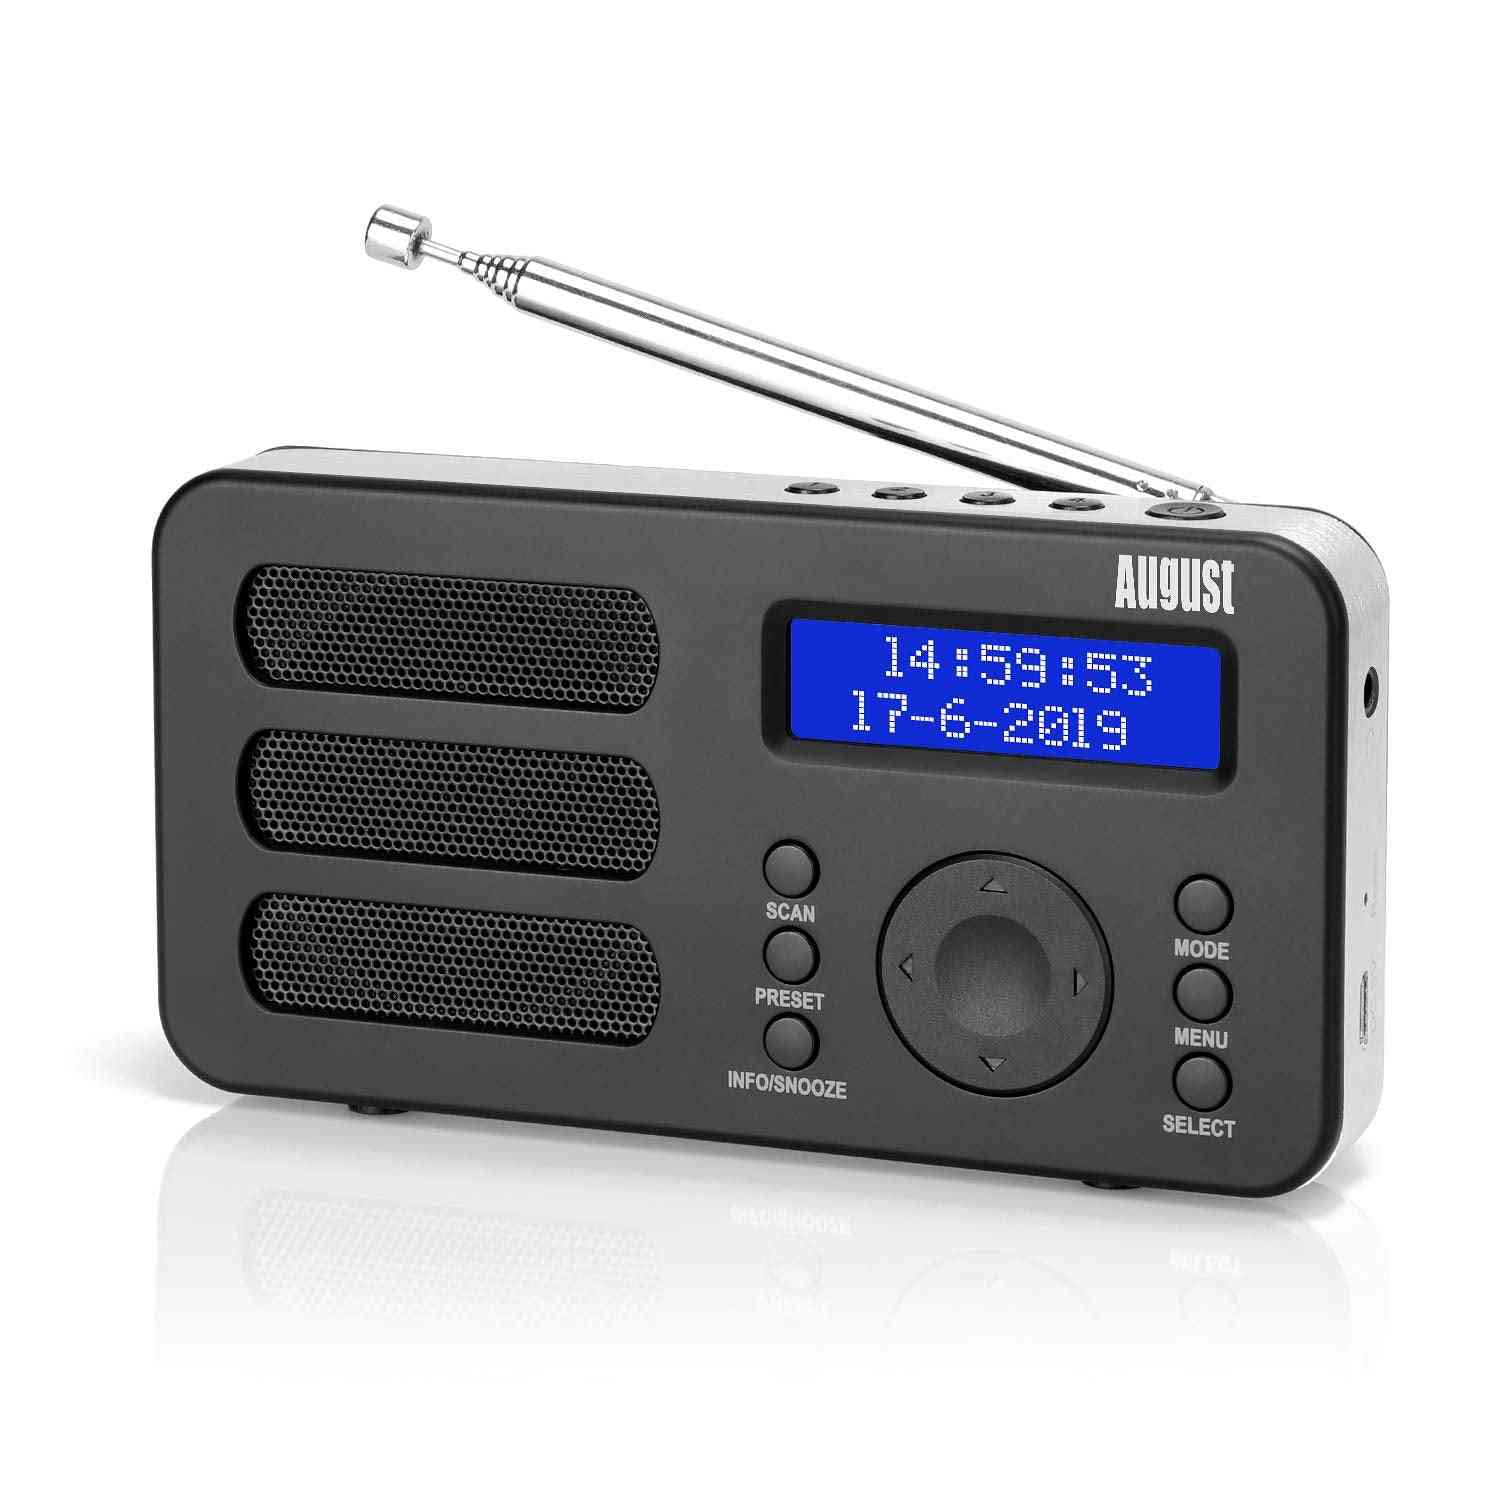 Portable Digital Radio Mb225, Dab, Dab+ Fm Rds Function With Dual Alarm Stereo,mono Speaker Rechargeable Battery With Lcd (mb225)